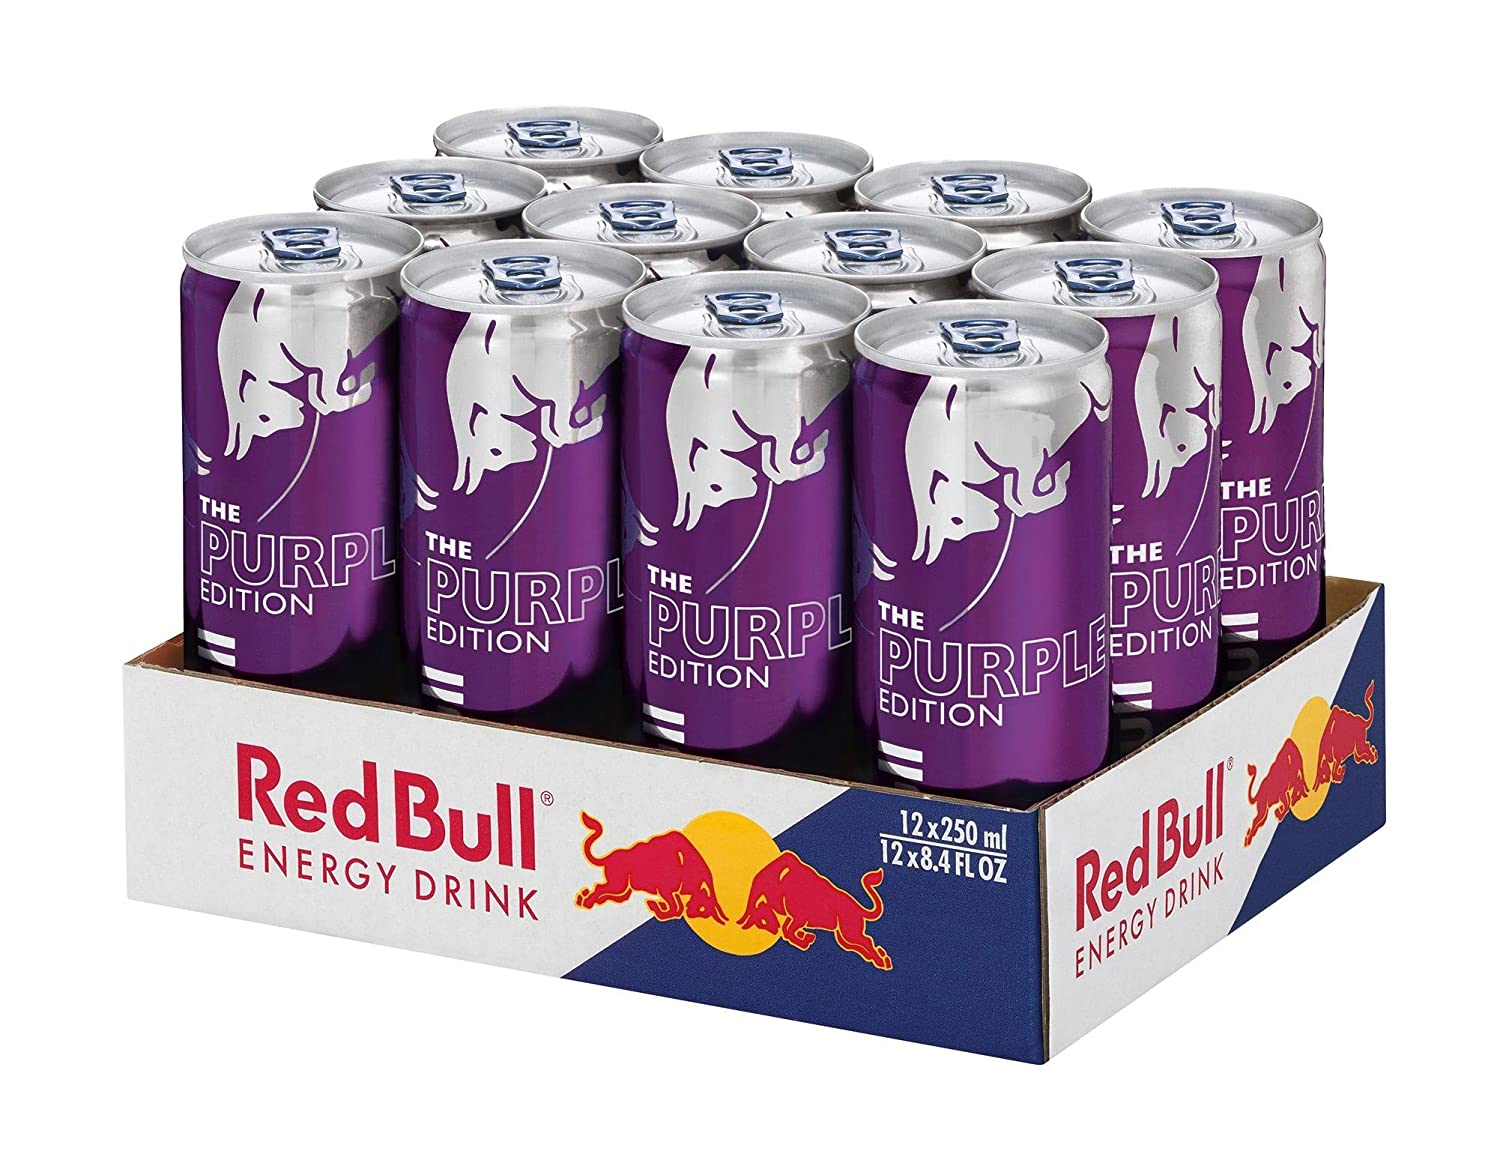 Red Bull Kühlschrank Beleuchtung : Red bull energy drink acai beere dosen getränke purple edition